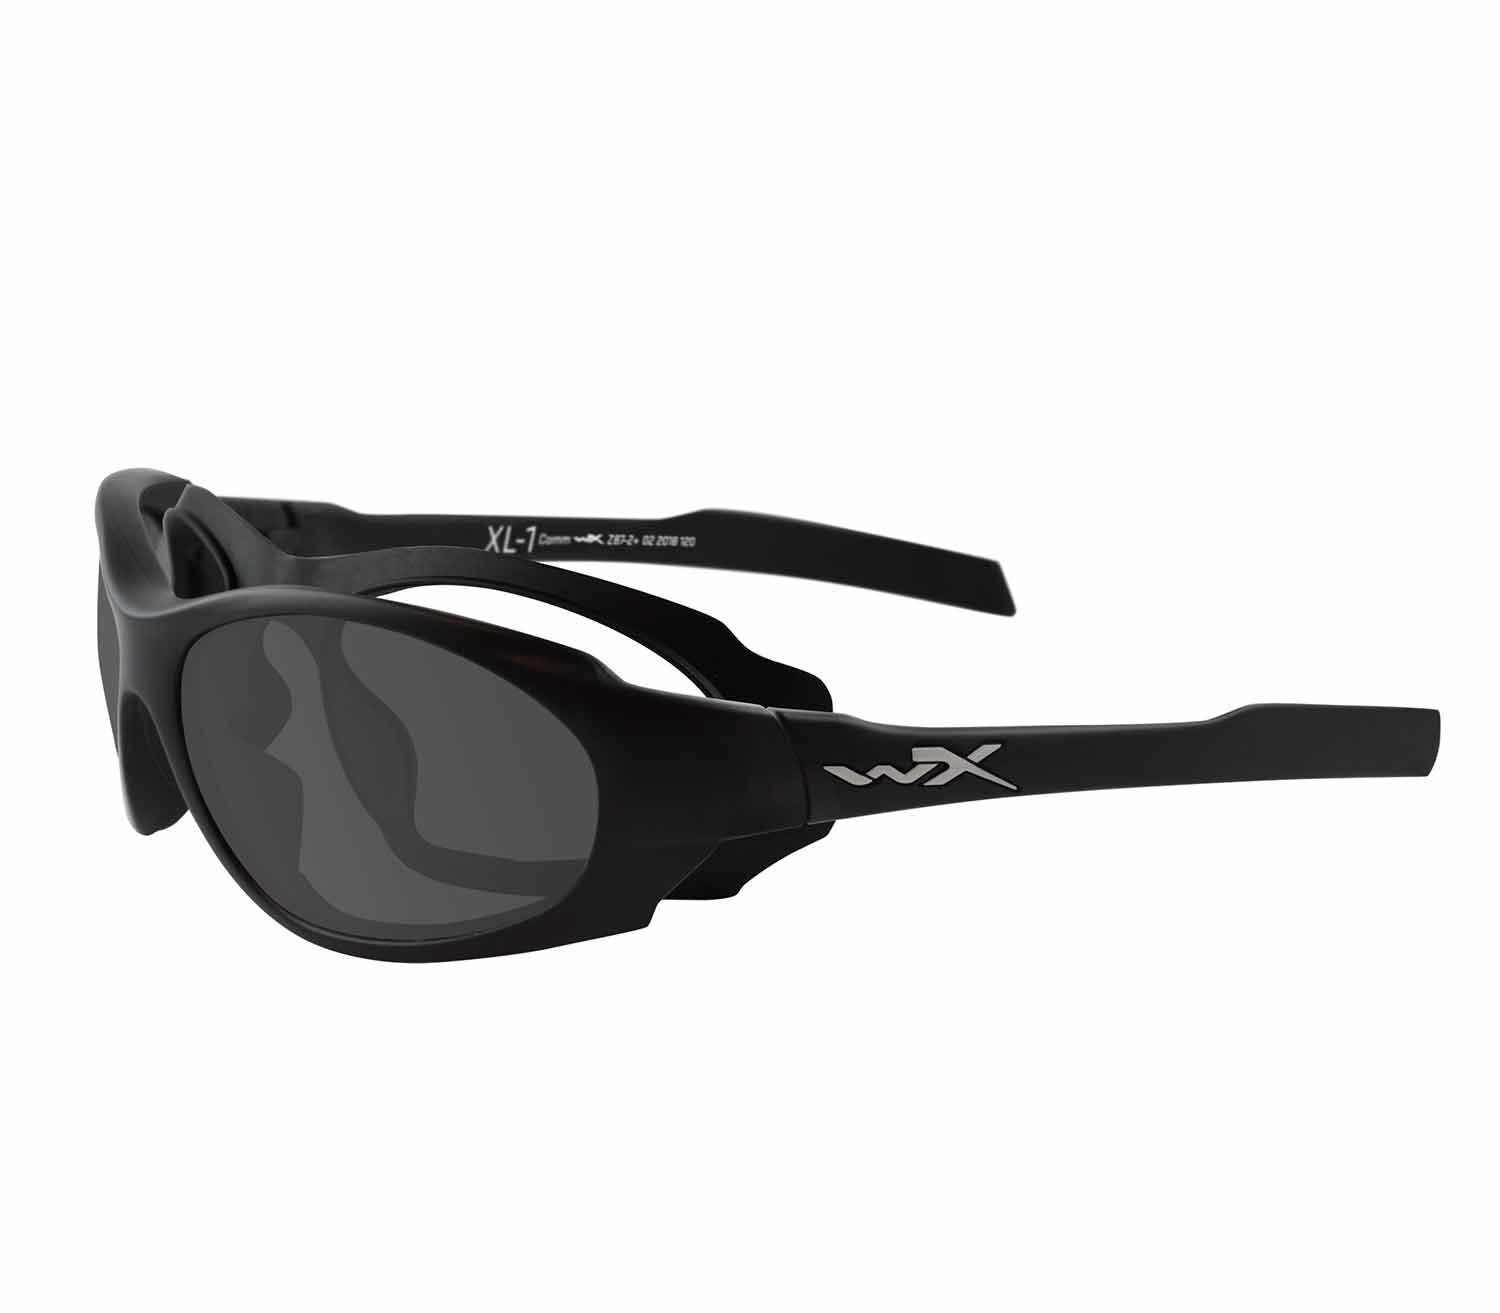 Gafas Wiley X XL-1 AD COMM lateral con junta